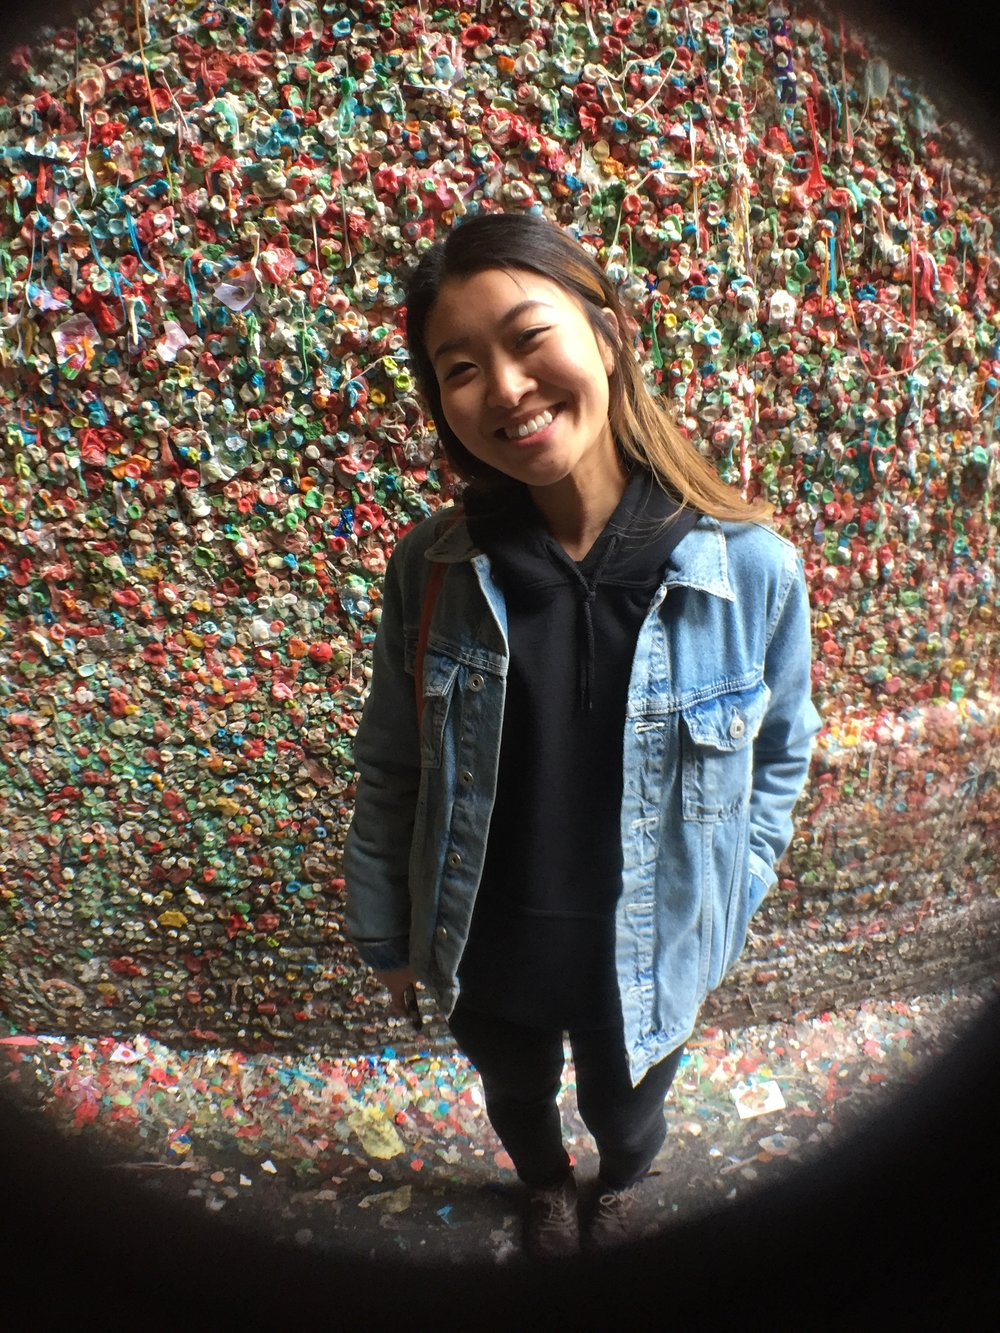 """Gum Wall"" - I call this one, I am smiling on the outside but freaking out on the inside being this close to all this gum."